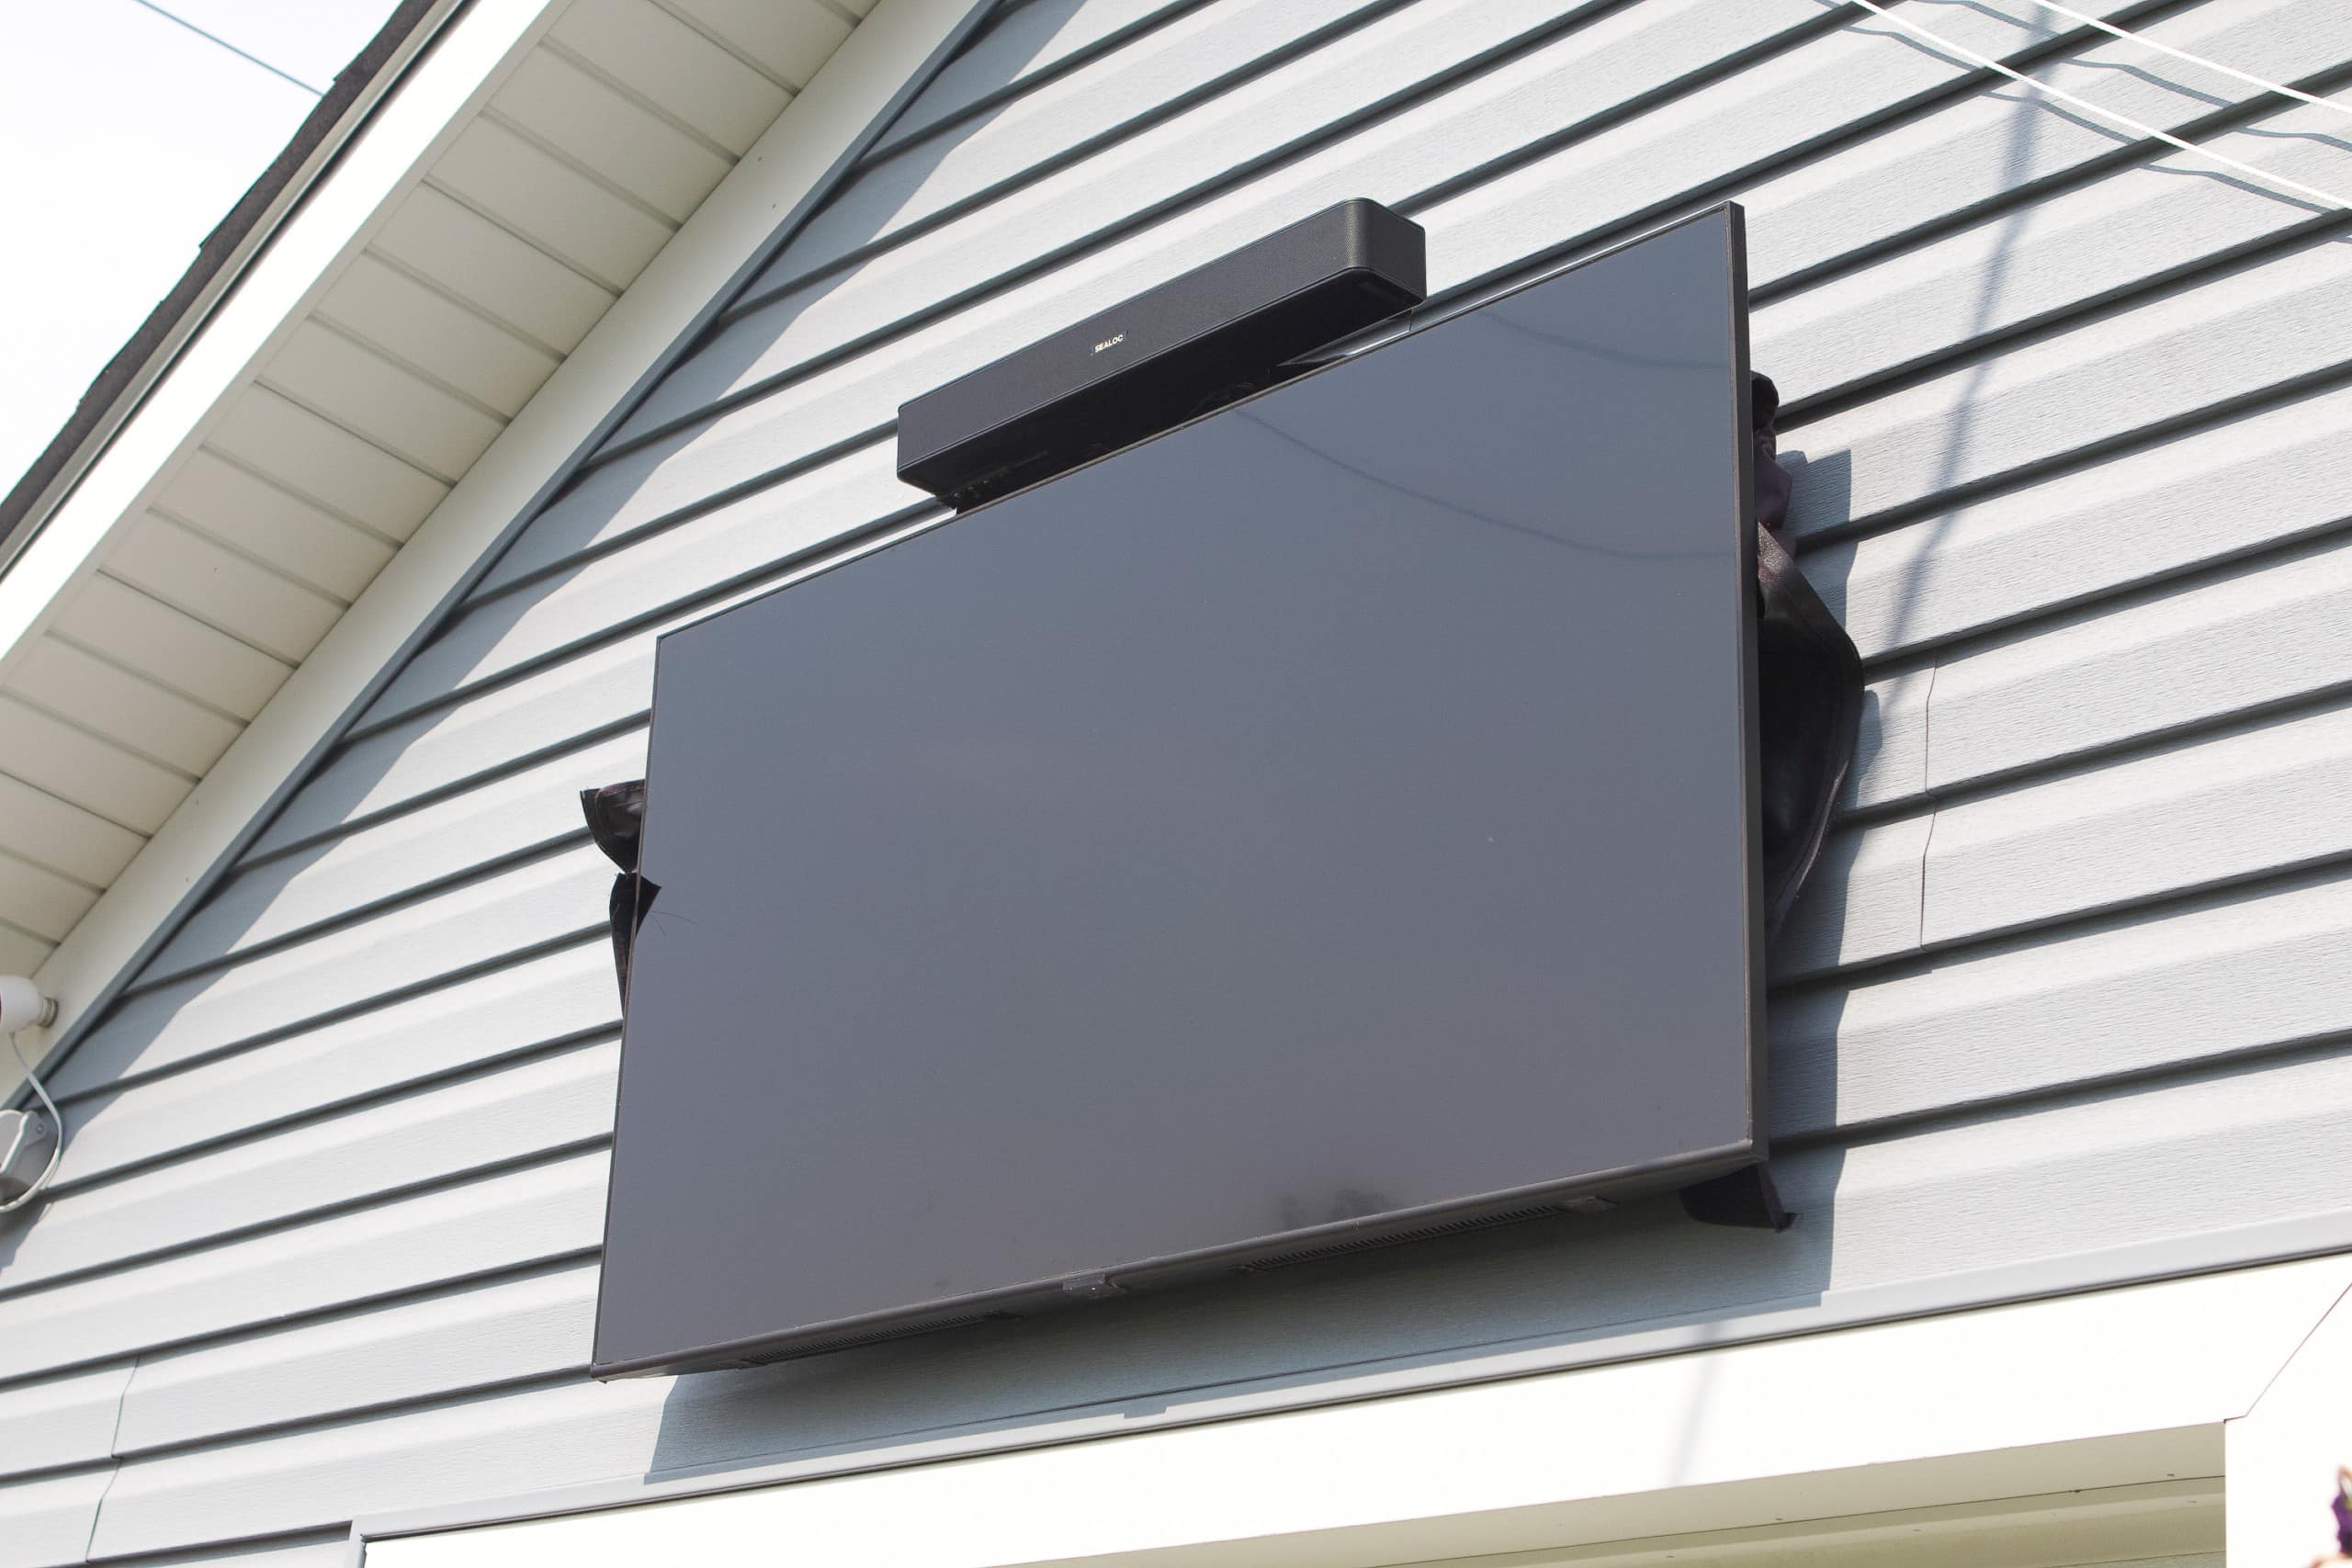 Outdoor TV in an outdoor room